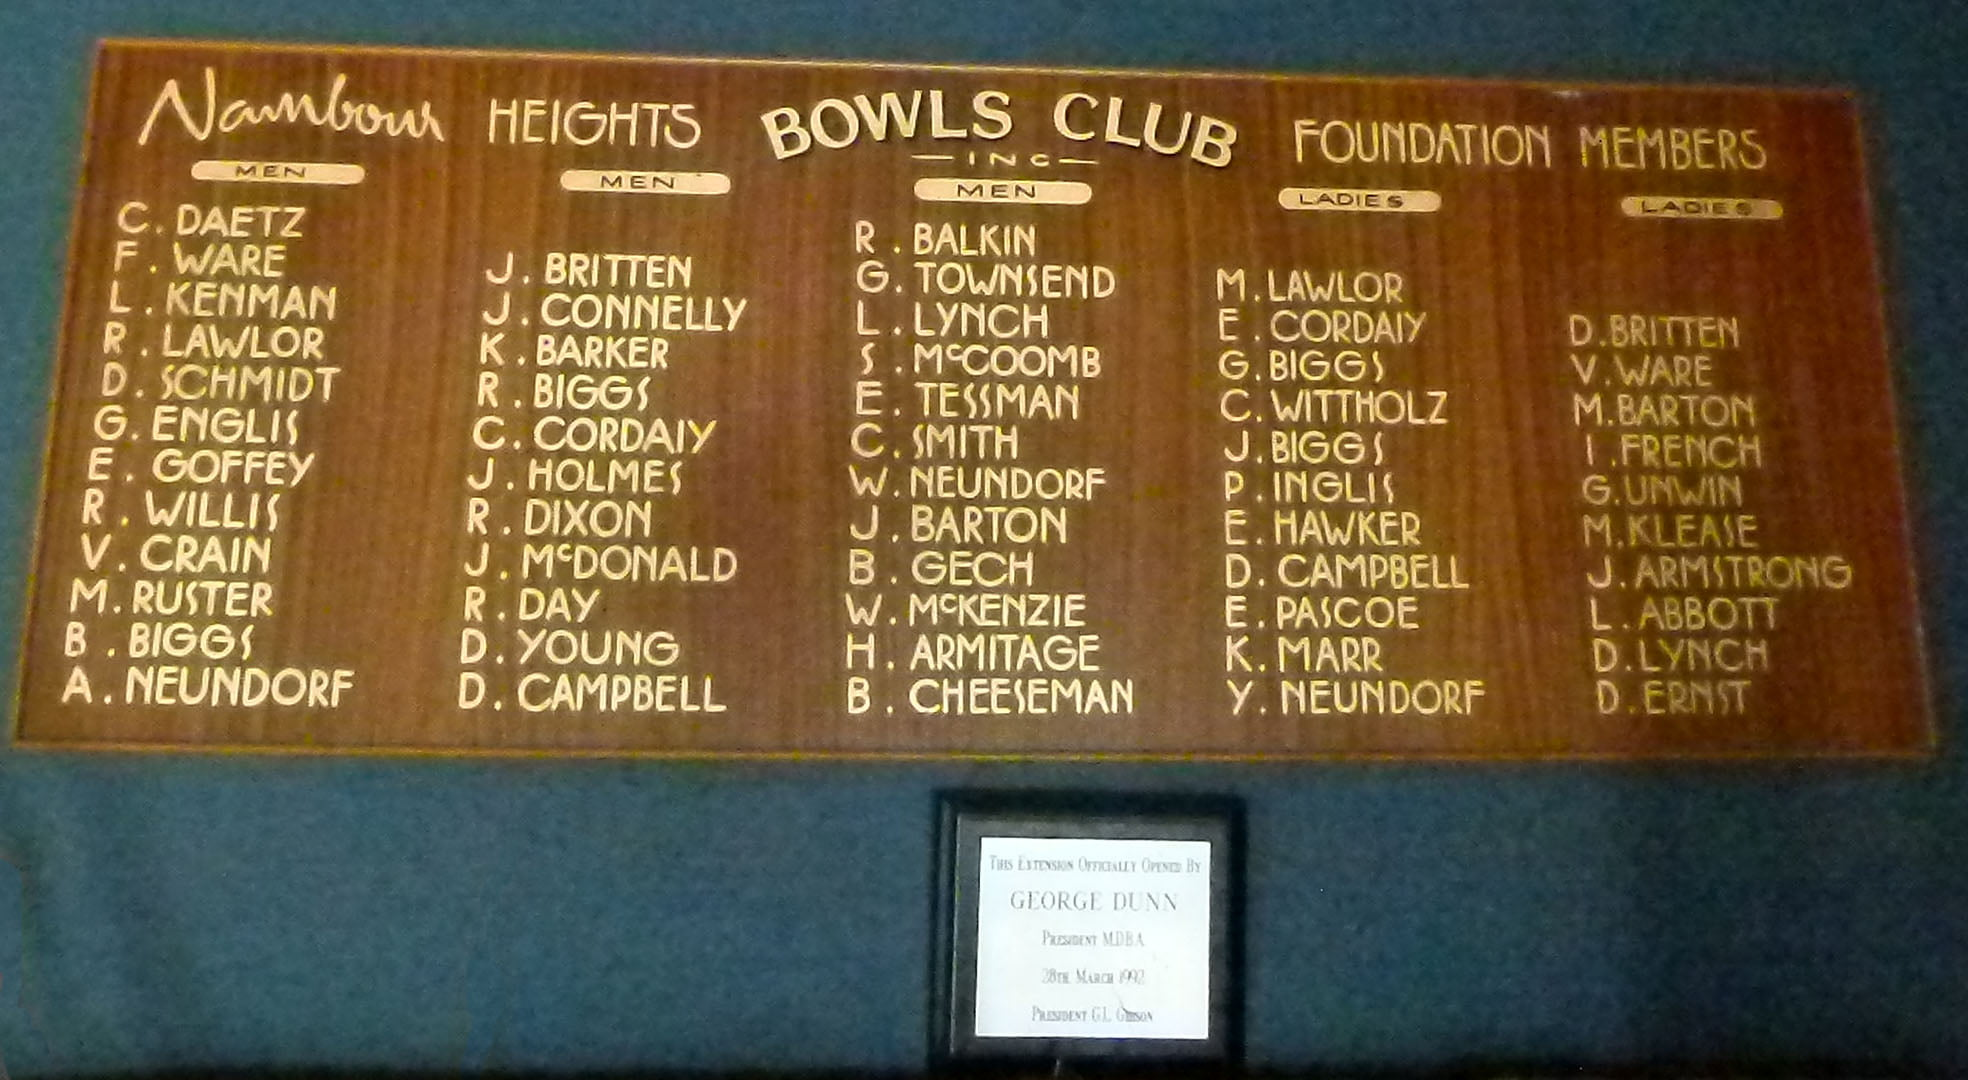 nambour heights bowls club foundation members